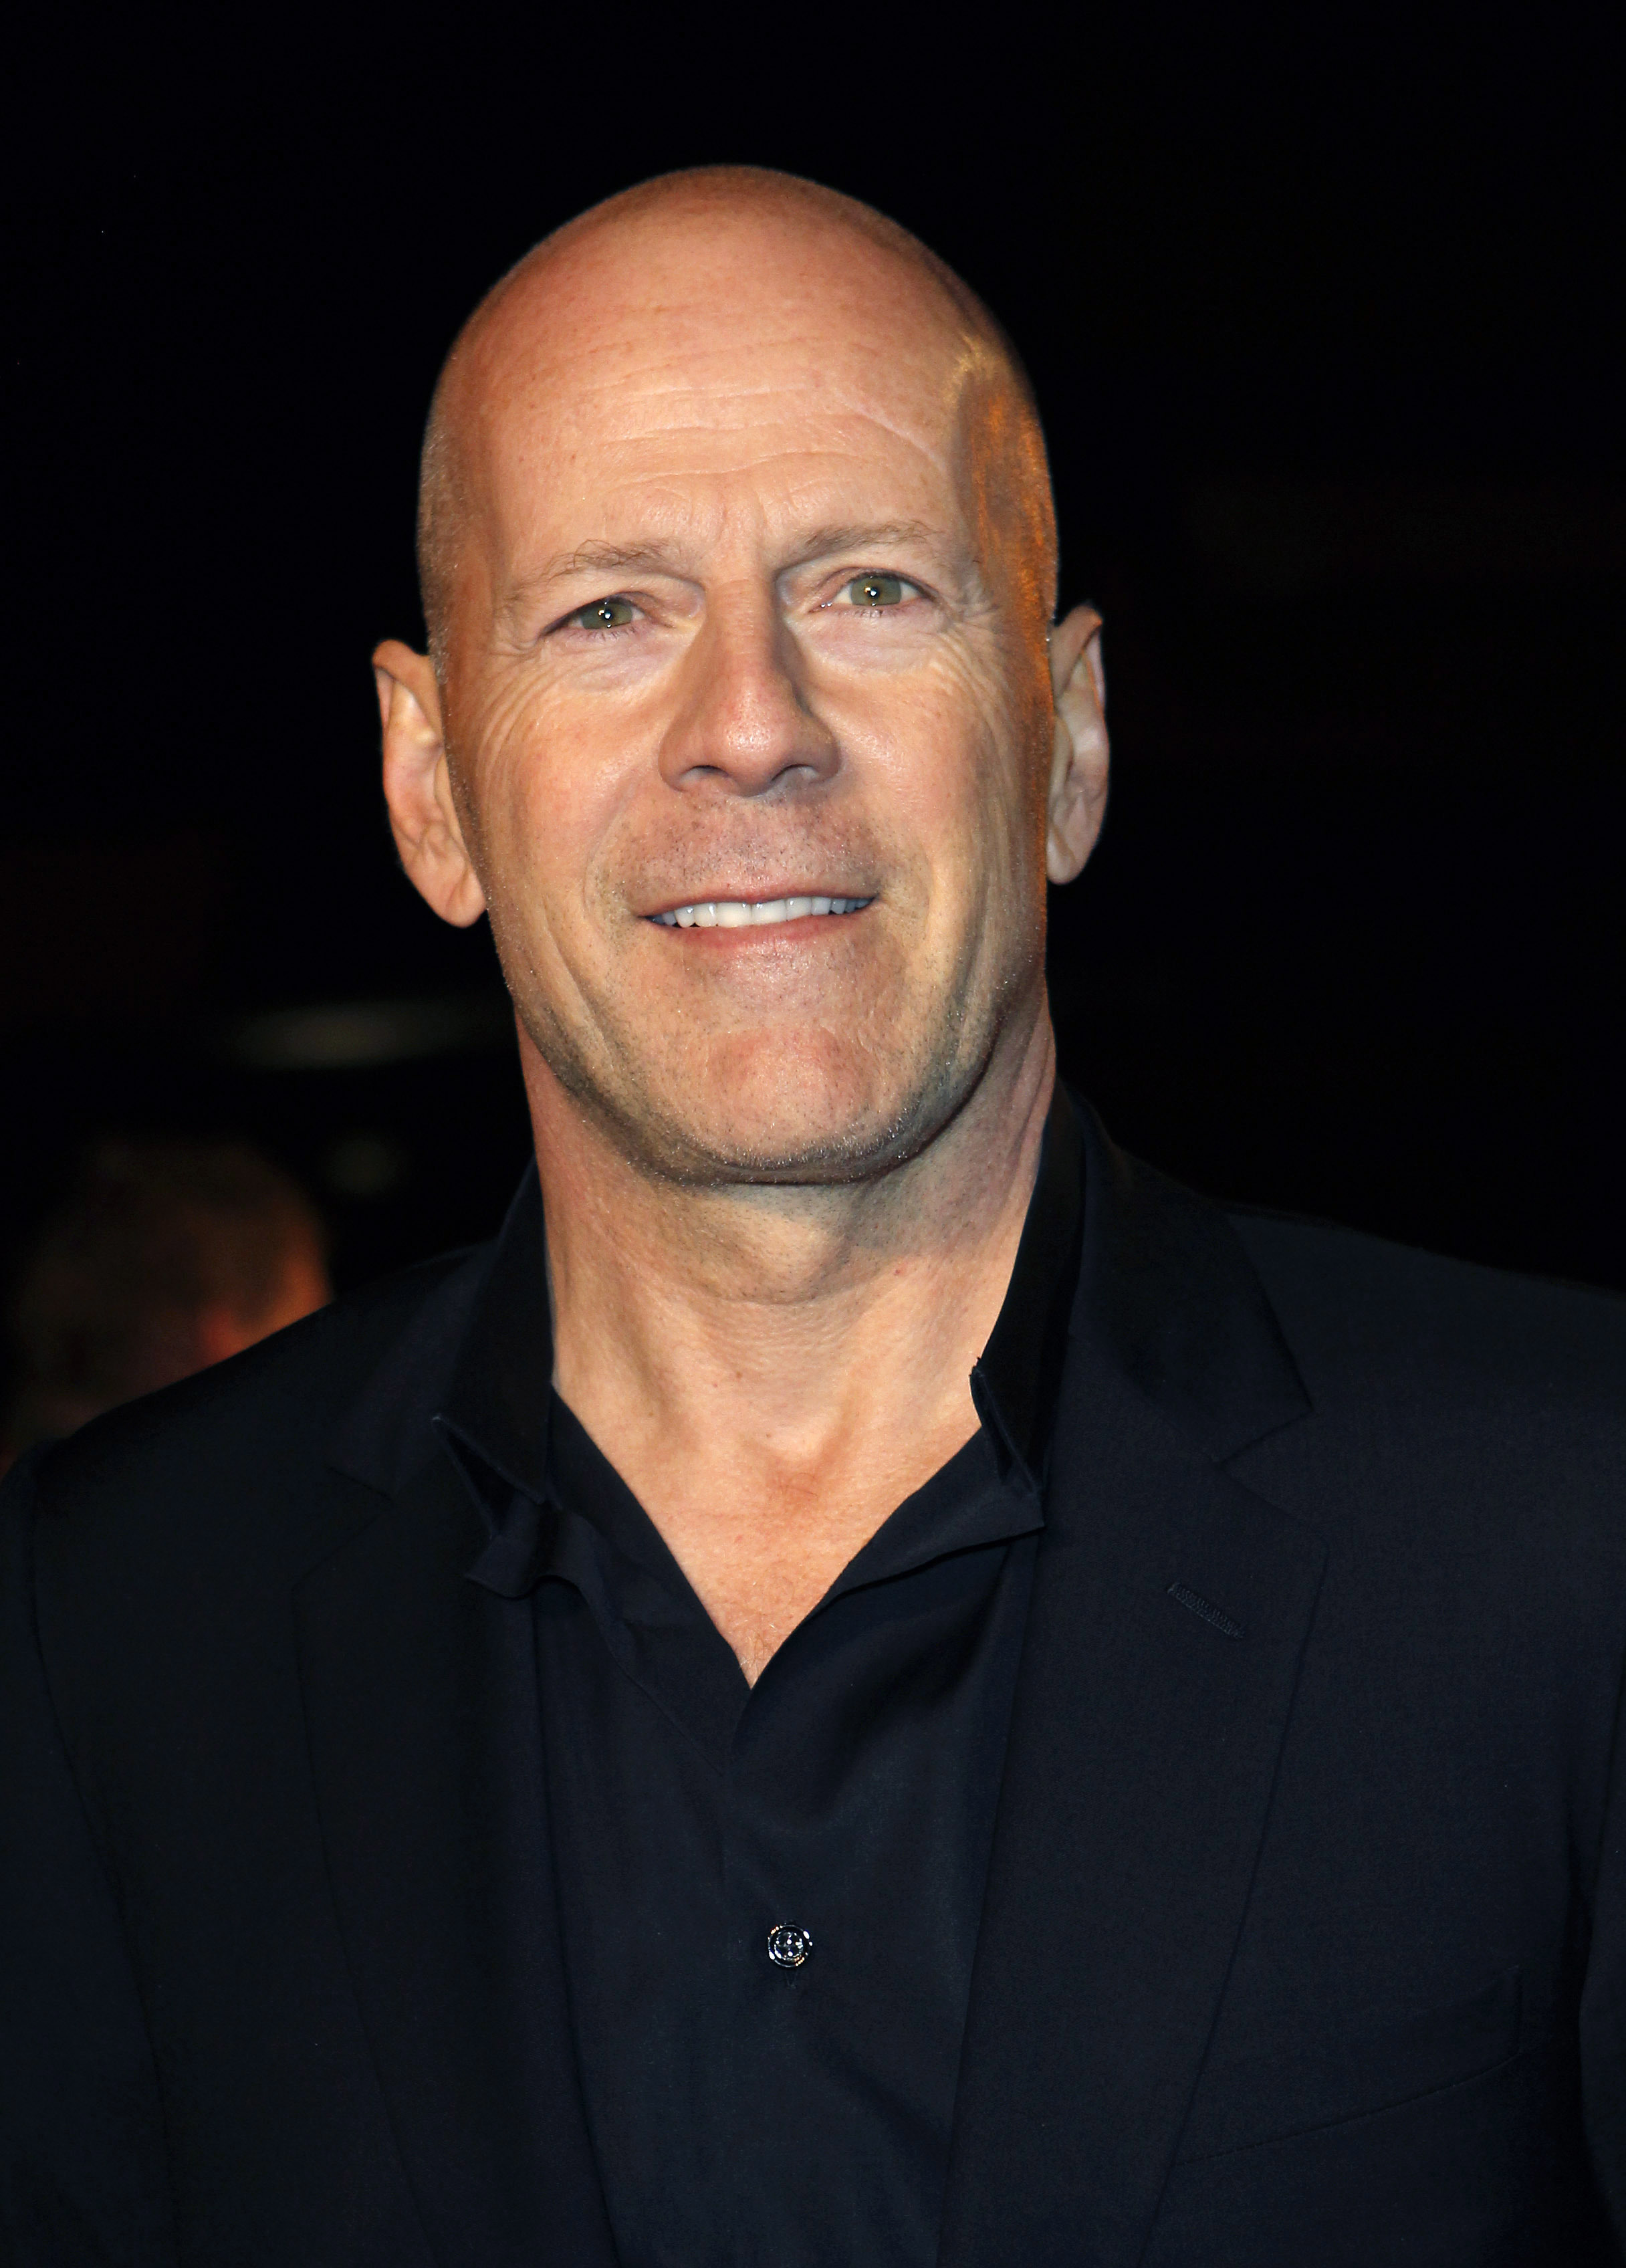 Bruce Willis hair or bald